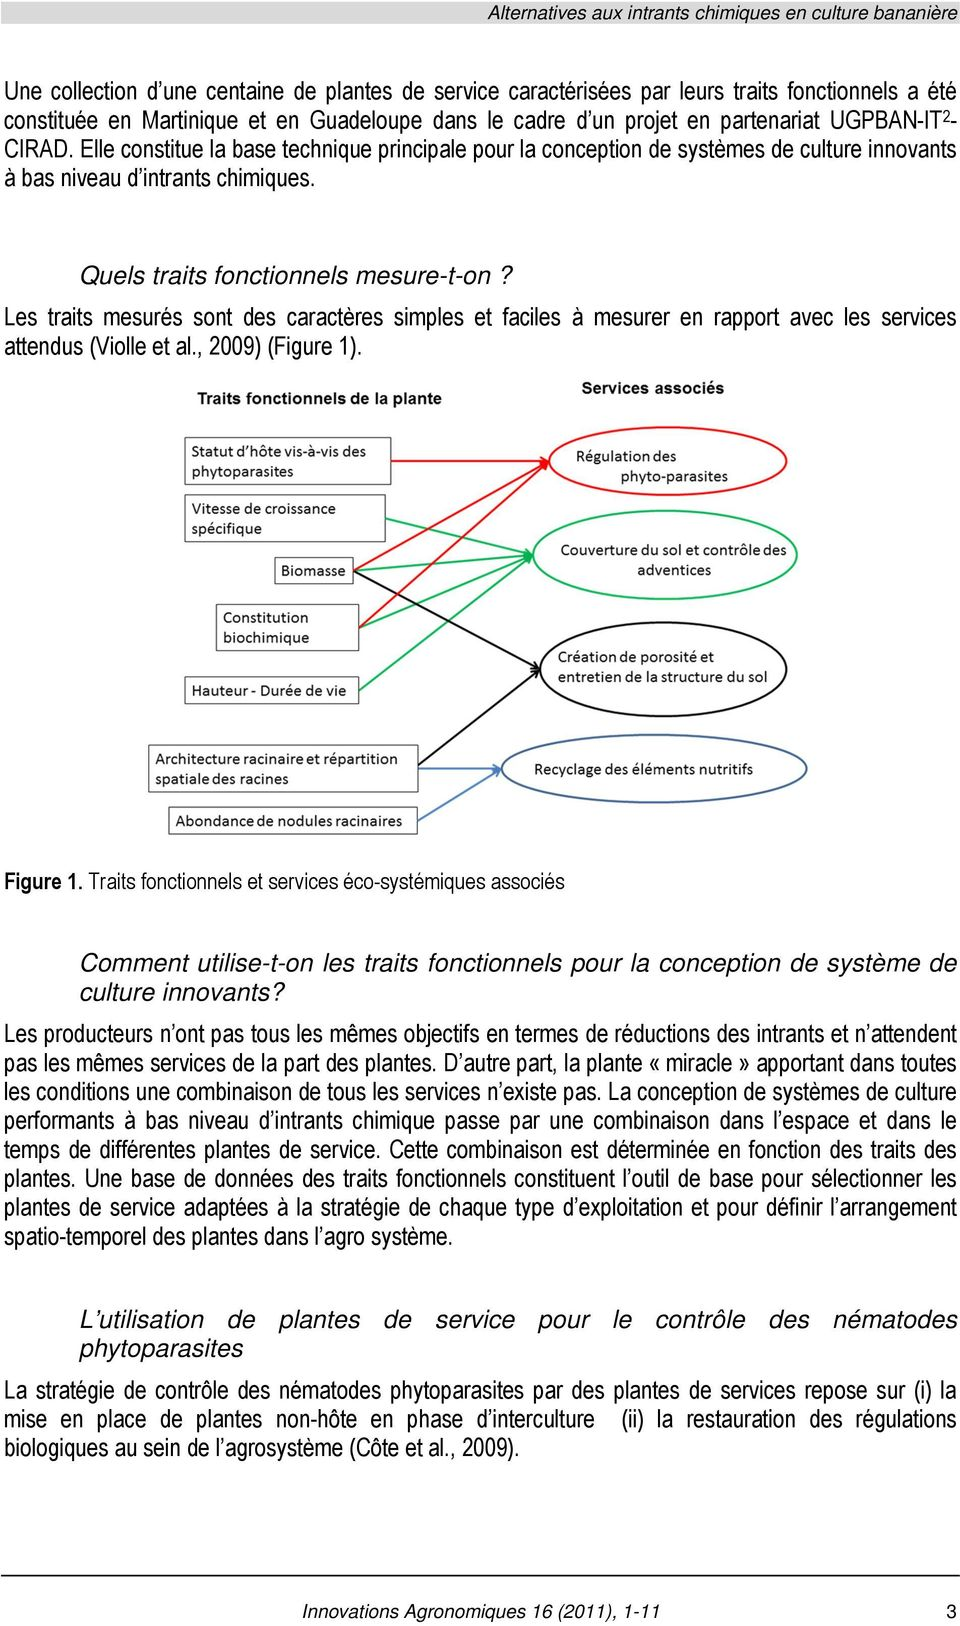 Elle constitue la base technique principale pour la conception de systèmes de culture innovants à bas niveau d intrants chimiques. Quels traits fonctionnels mesure-t-on?